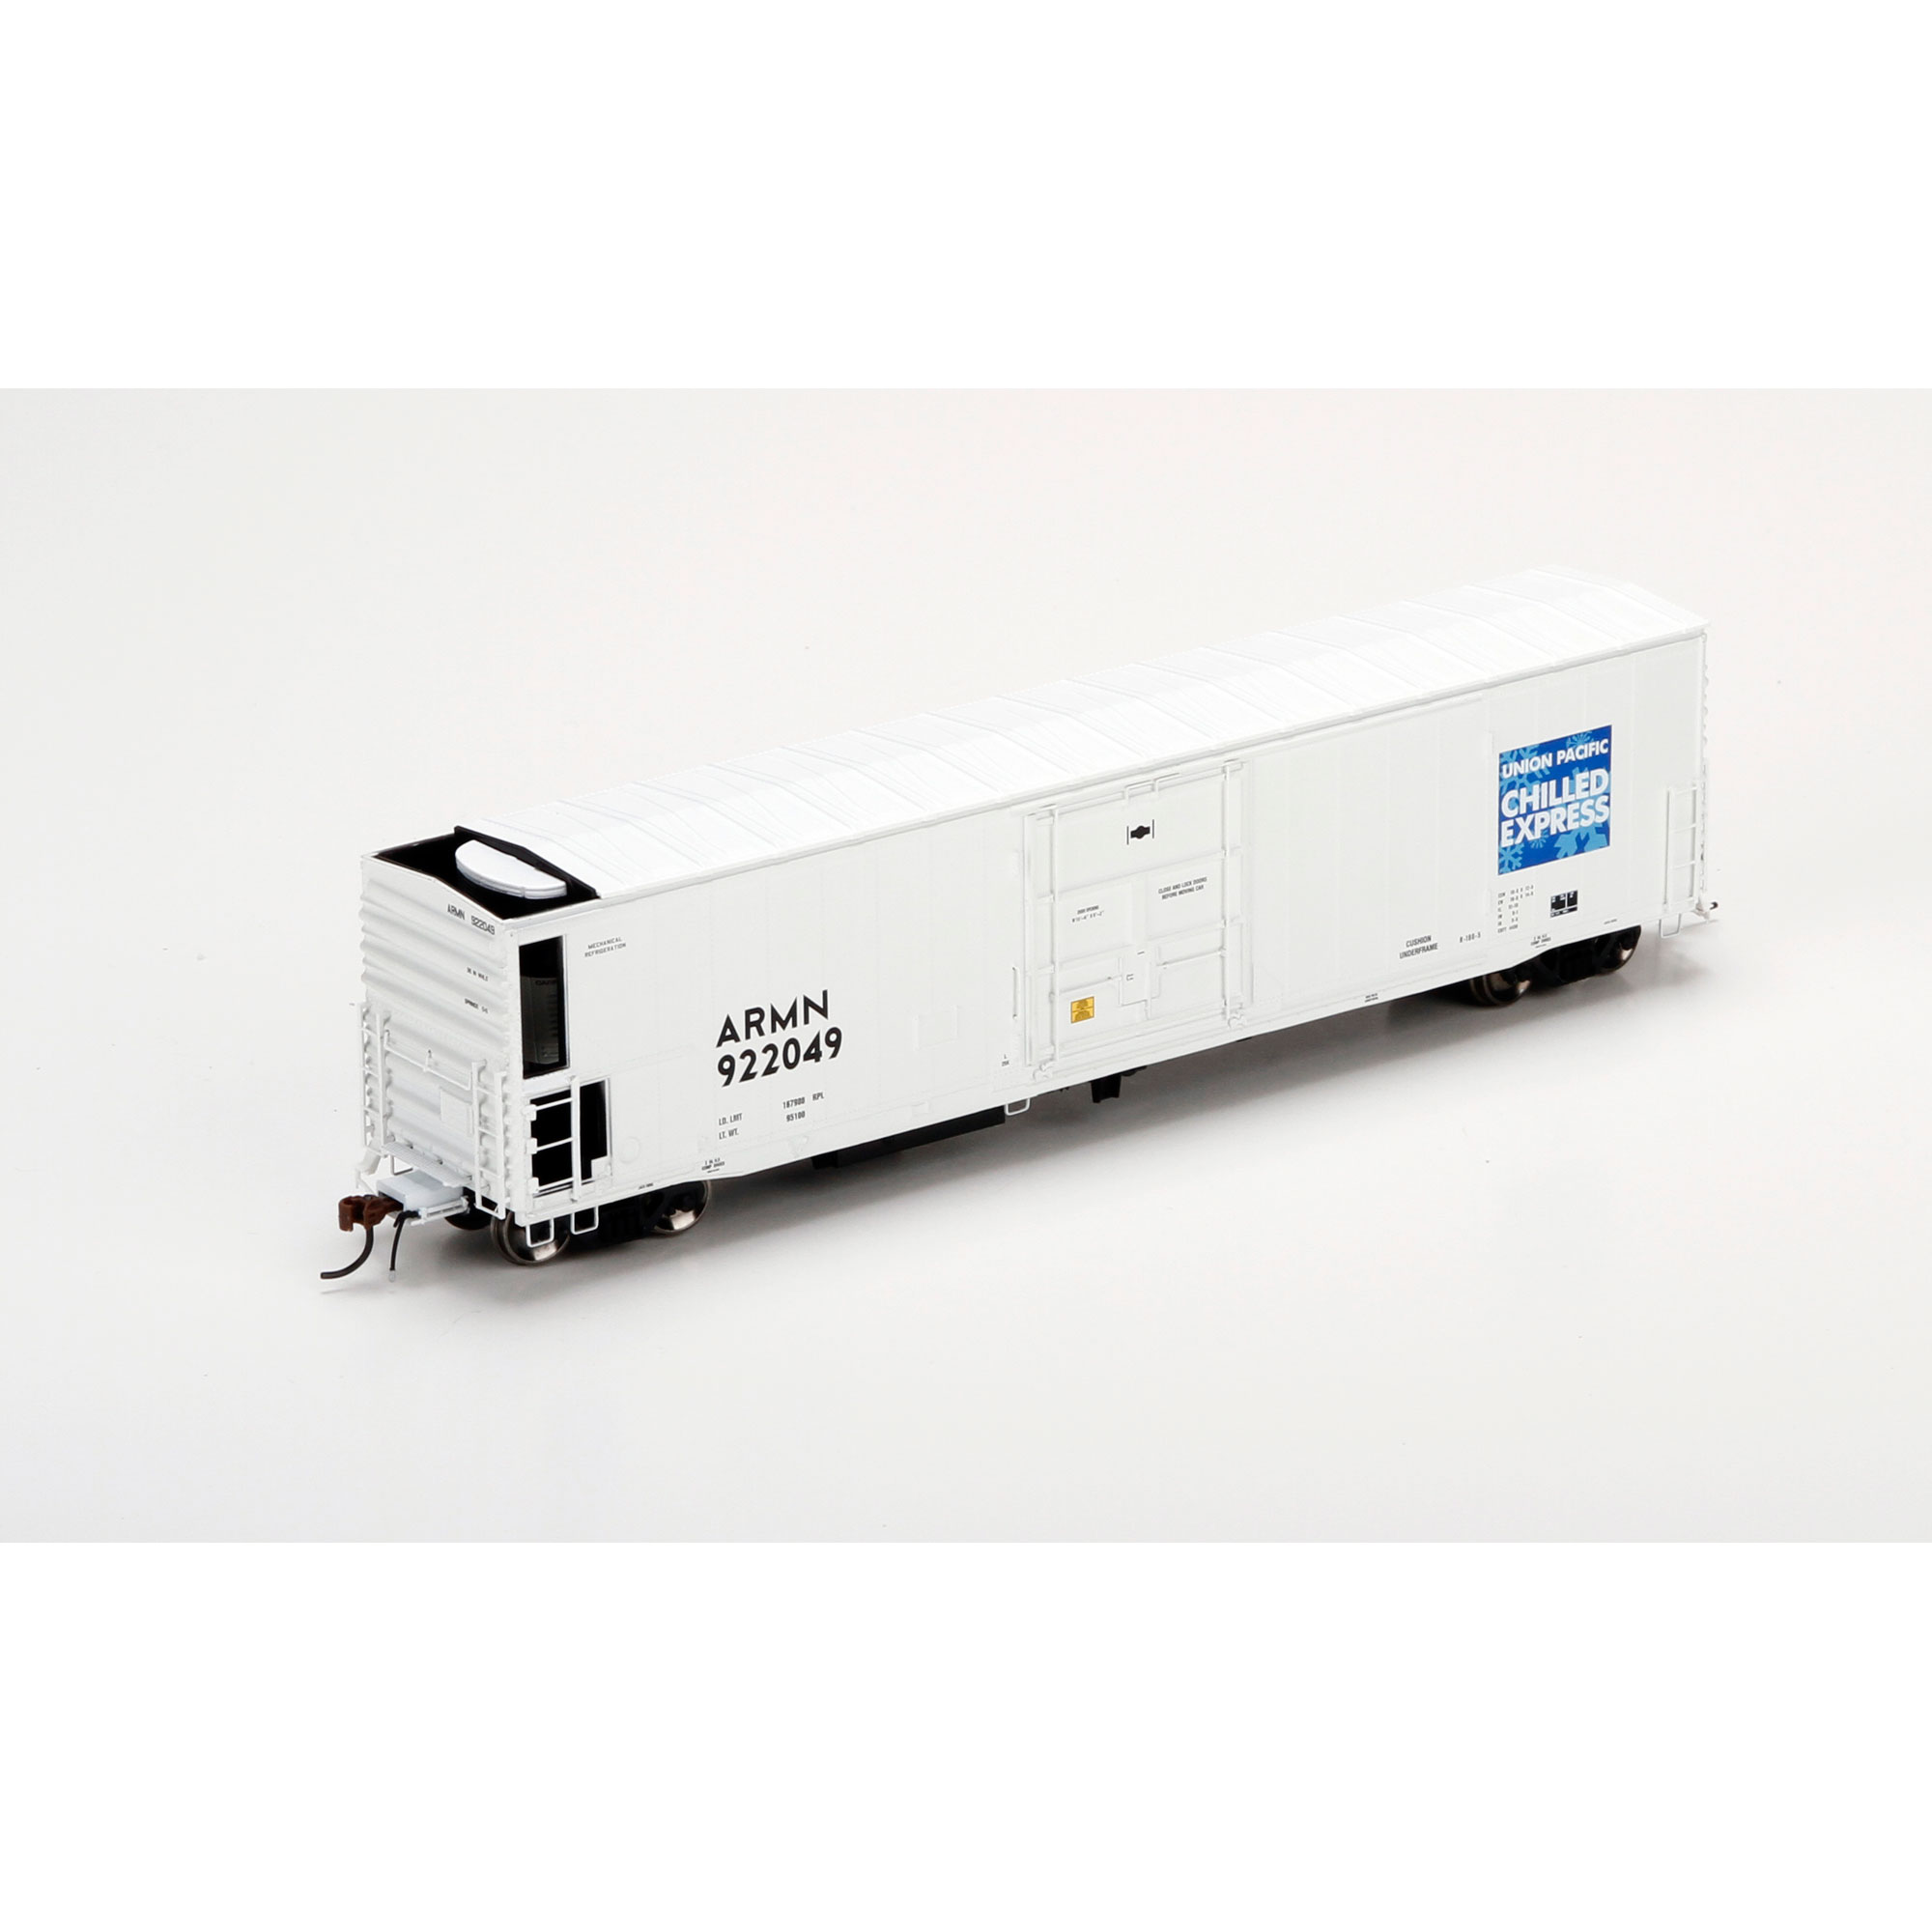 Athearn G63399 HO 57 Ft FGE Mech Reefer w/sound, Union Pacific /ARMN #922049